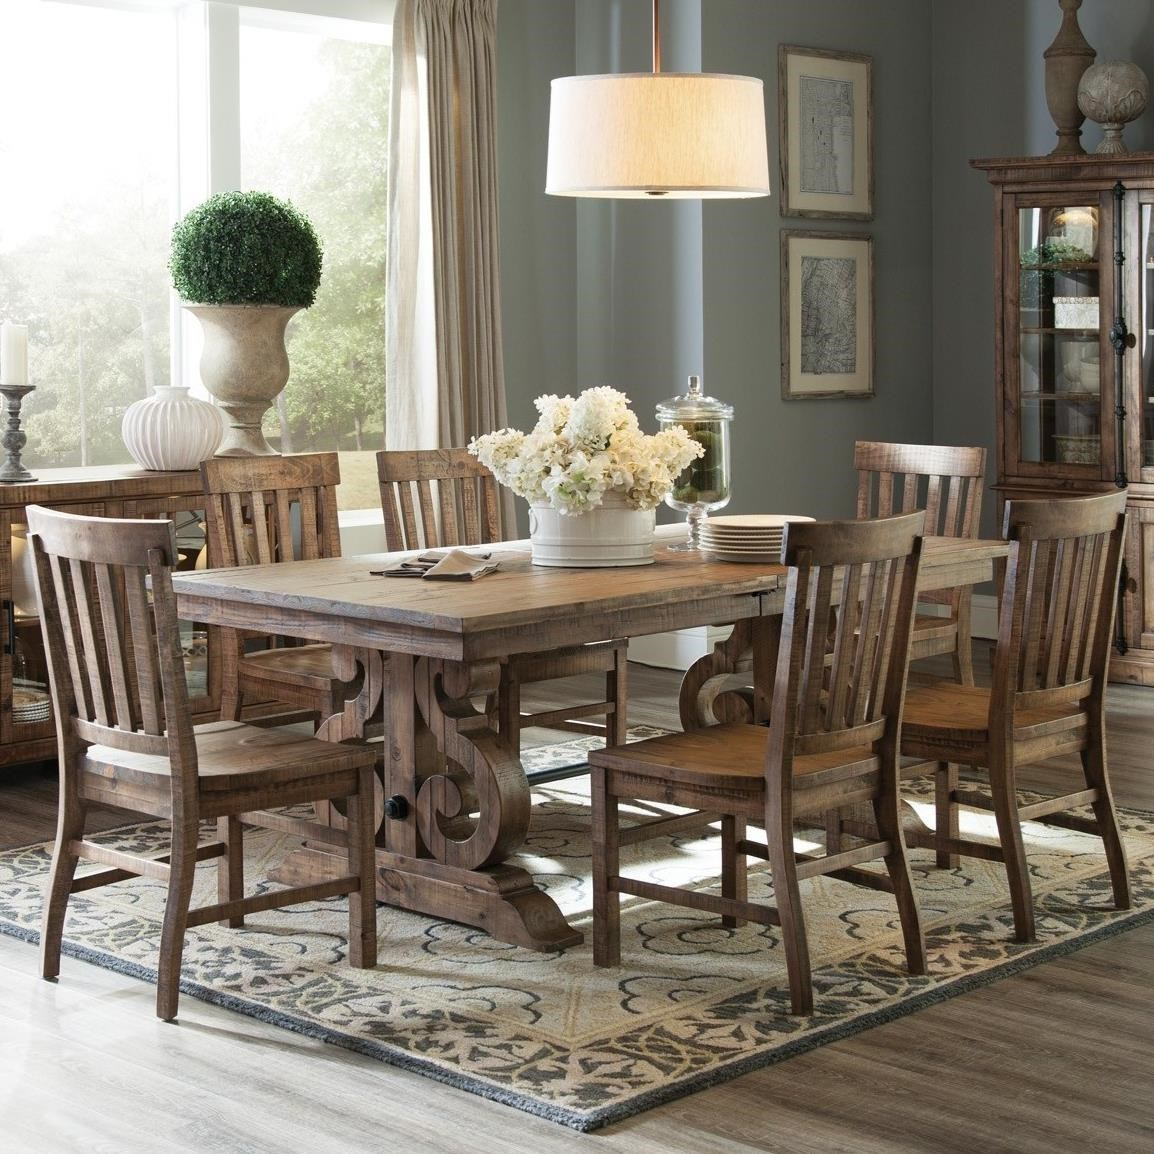 Magnussen Home Willoughby7-Piece Rectangular Dining Table Set ...  sc 1 st  Pilgrim Furniture & Magnussen Home Willoughby Solid Pine 7-Piece Rectangular Dining ...